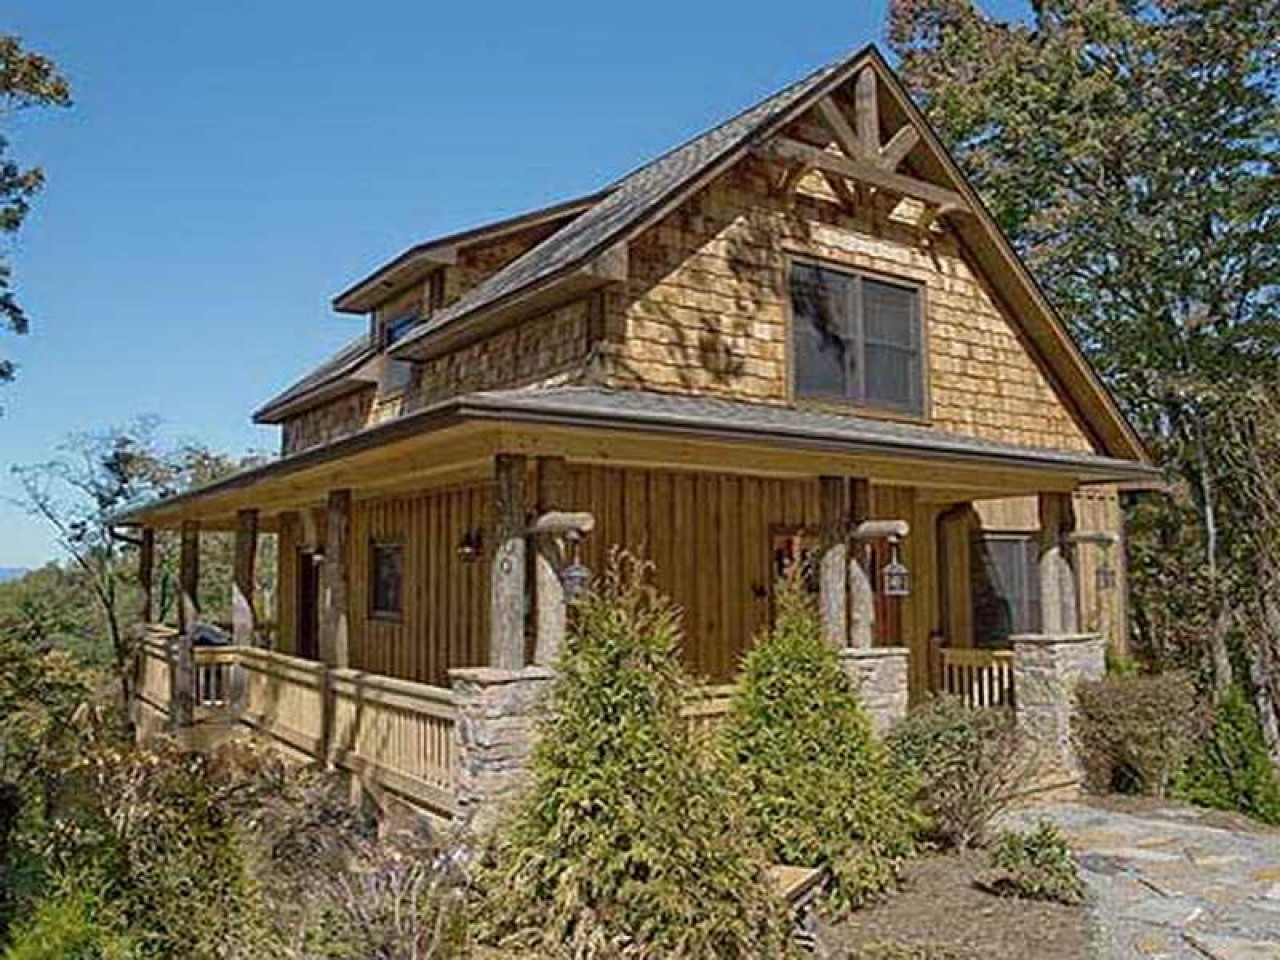 Unique Small House Plans Small Rustic House Plans, Rustic